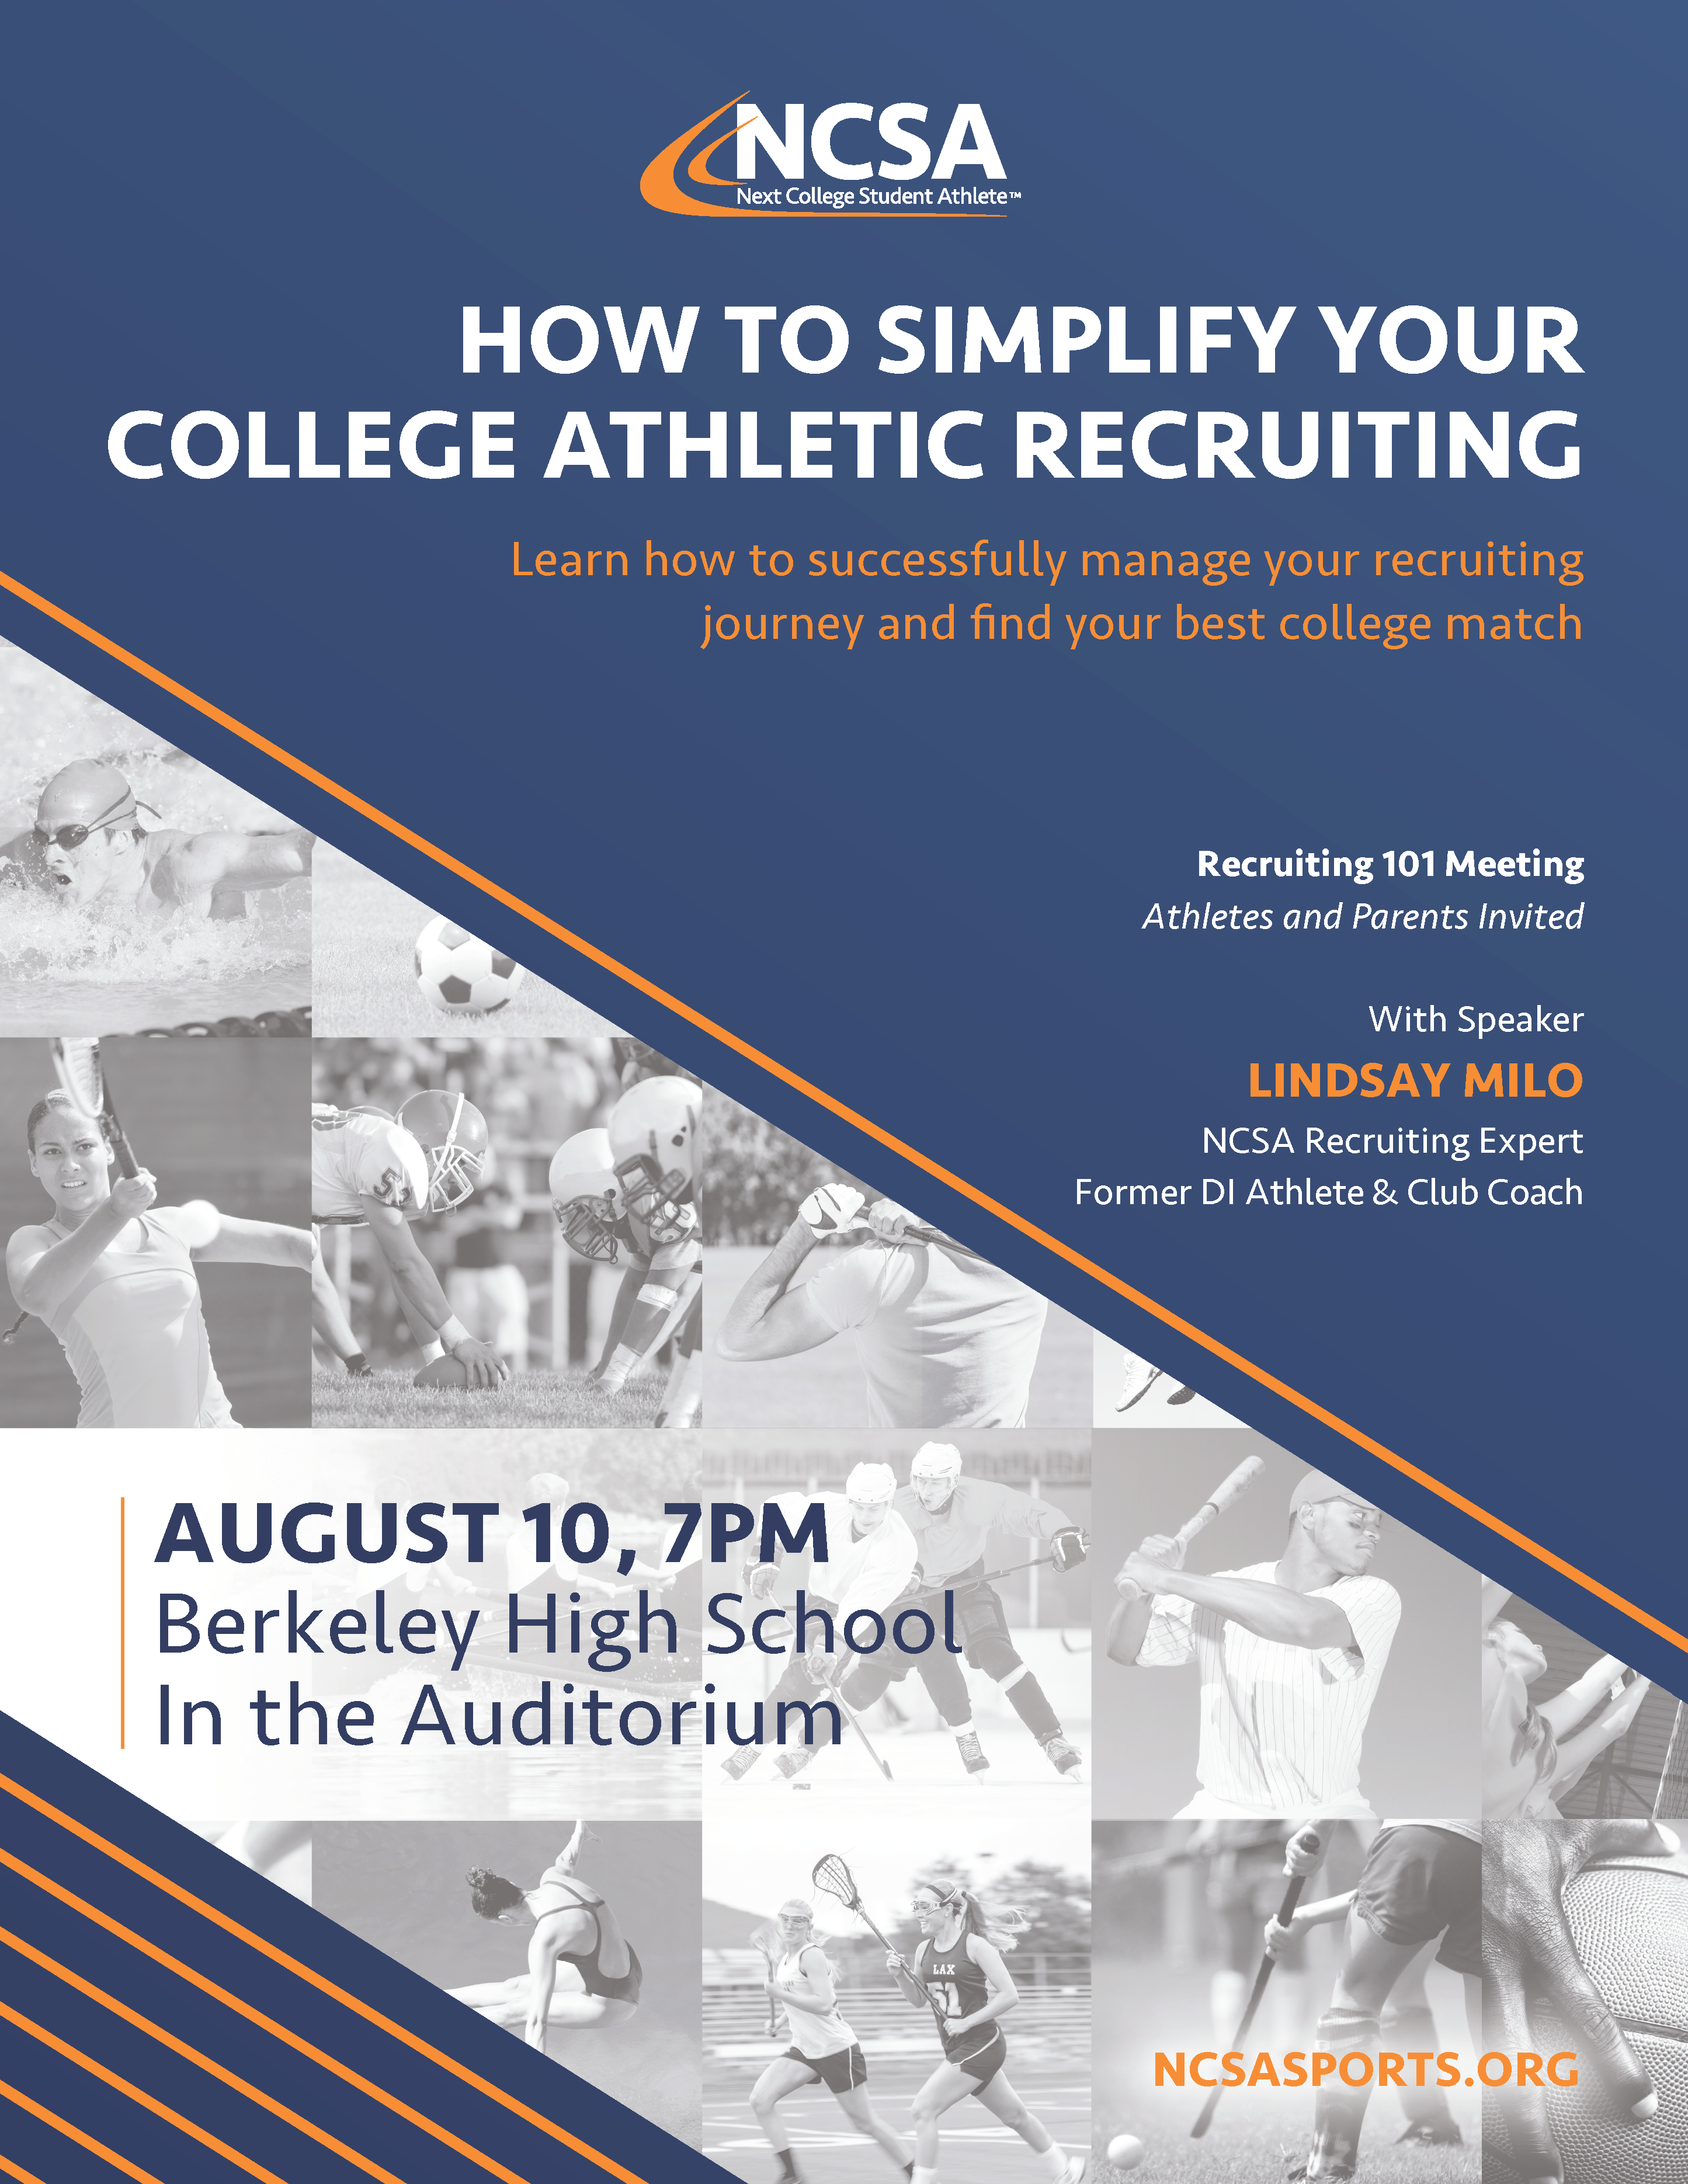 Want to play college sports? Join our recruiting education event w/ Lindsay Milo from @ncsa to learn about college recruiting.